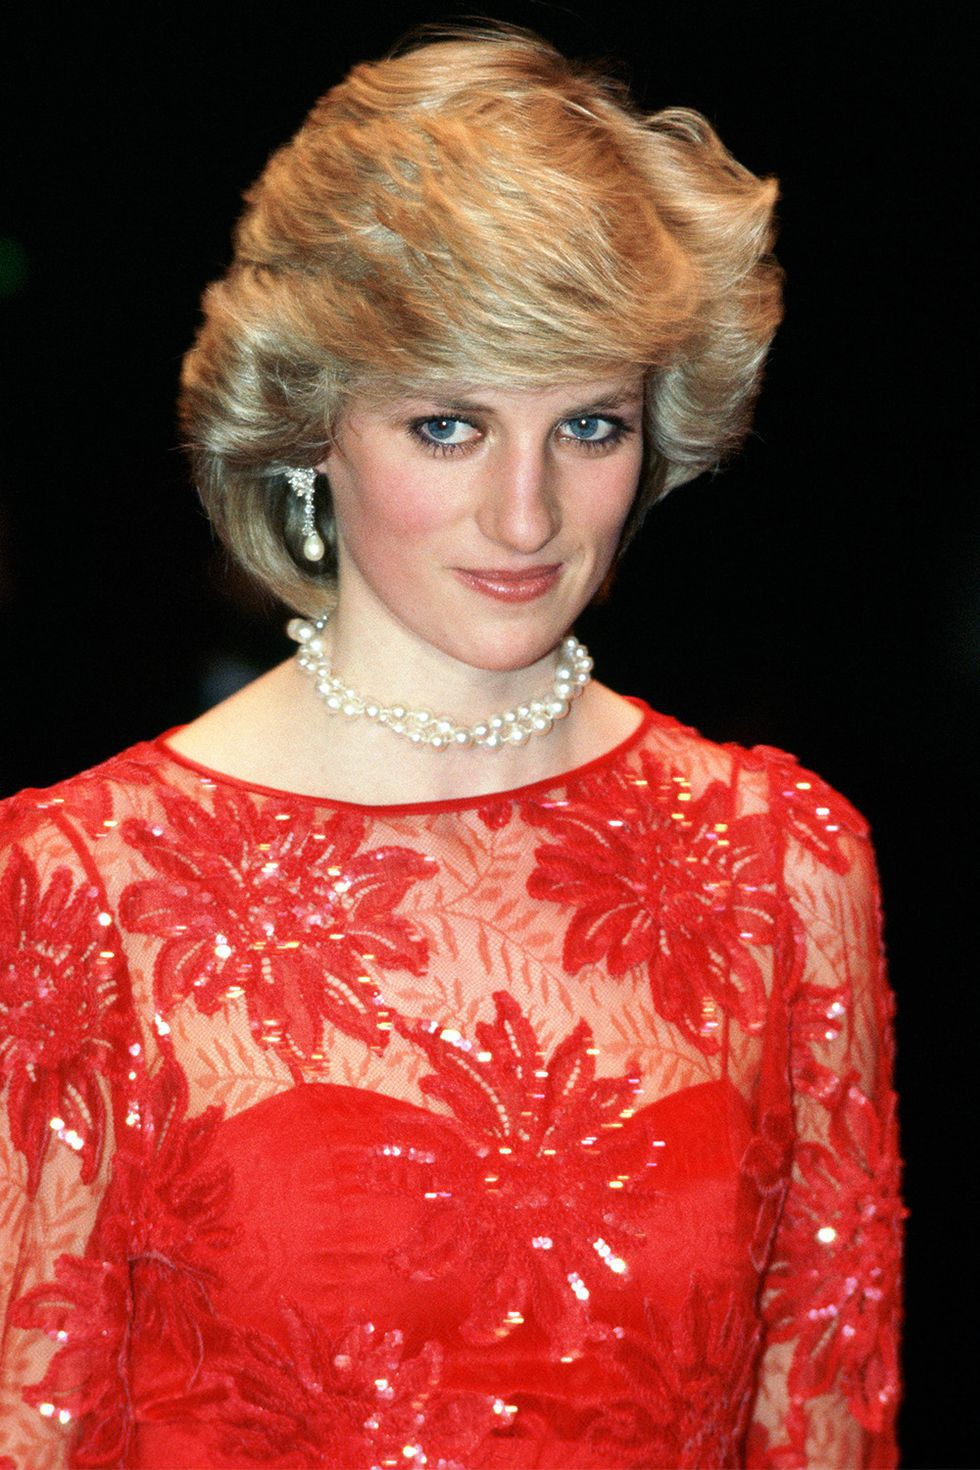 hbz-princess-diana-hair-1984-gettyimages-79733242-1502313842